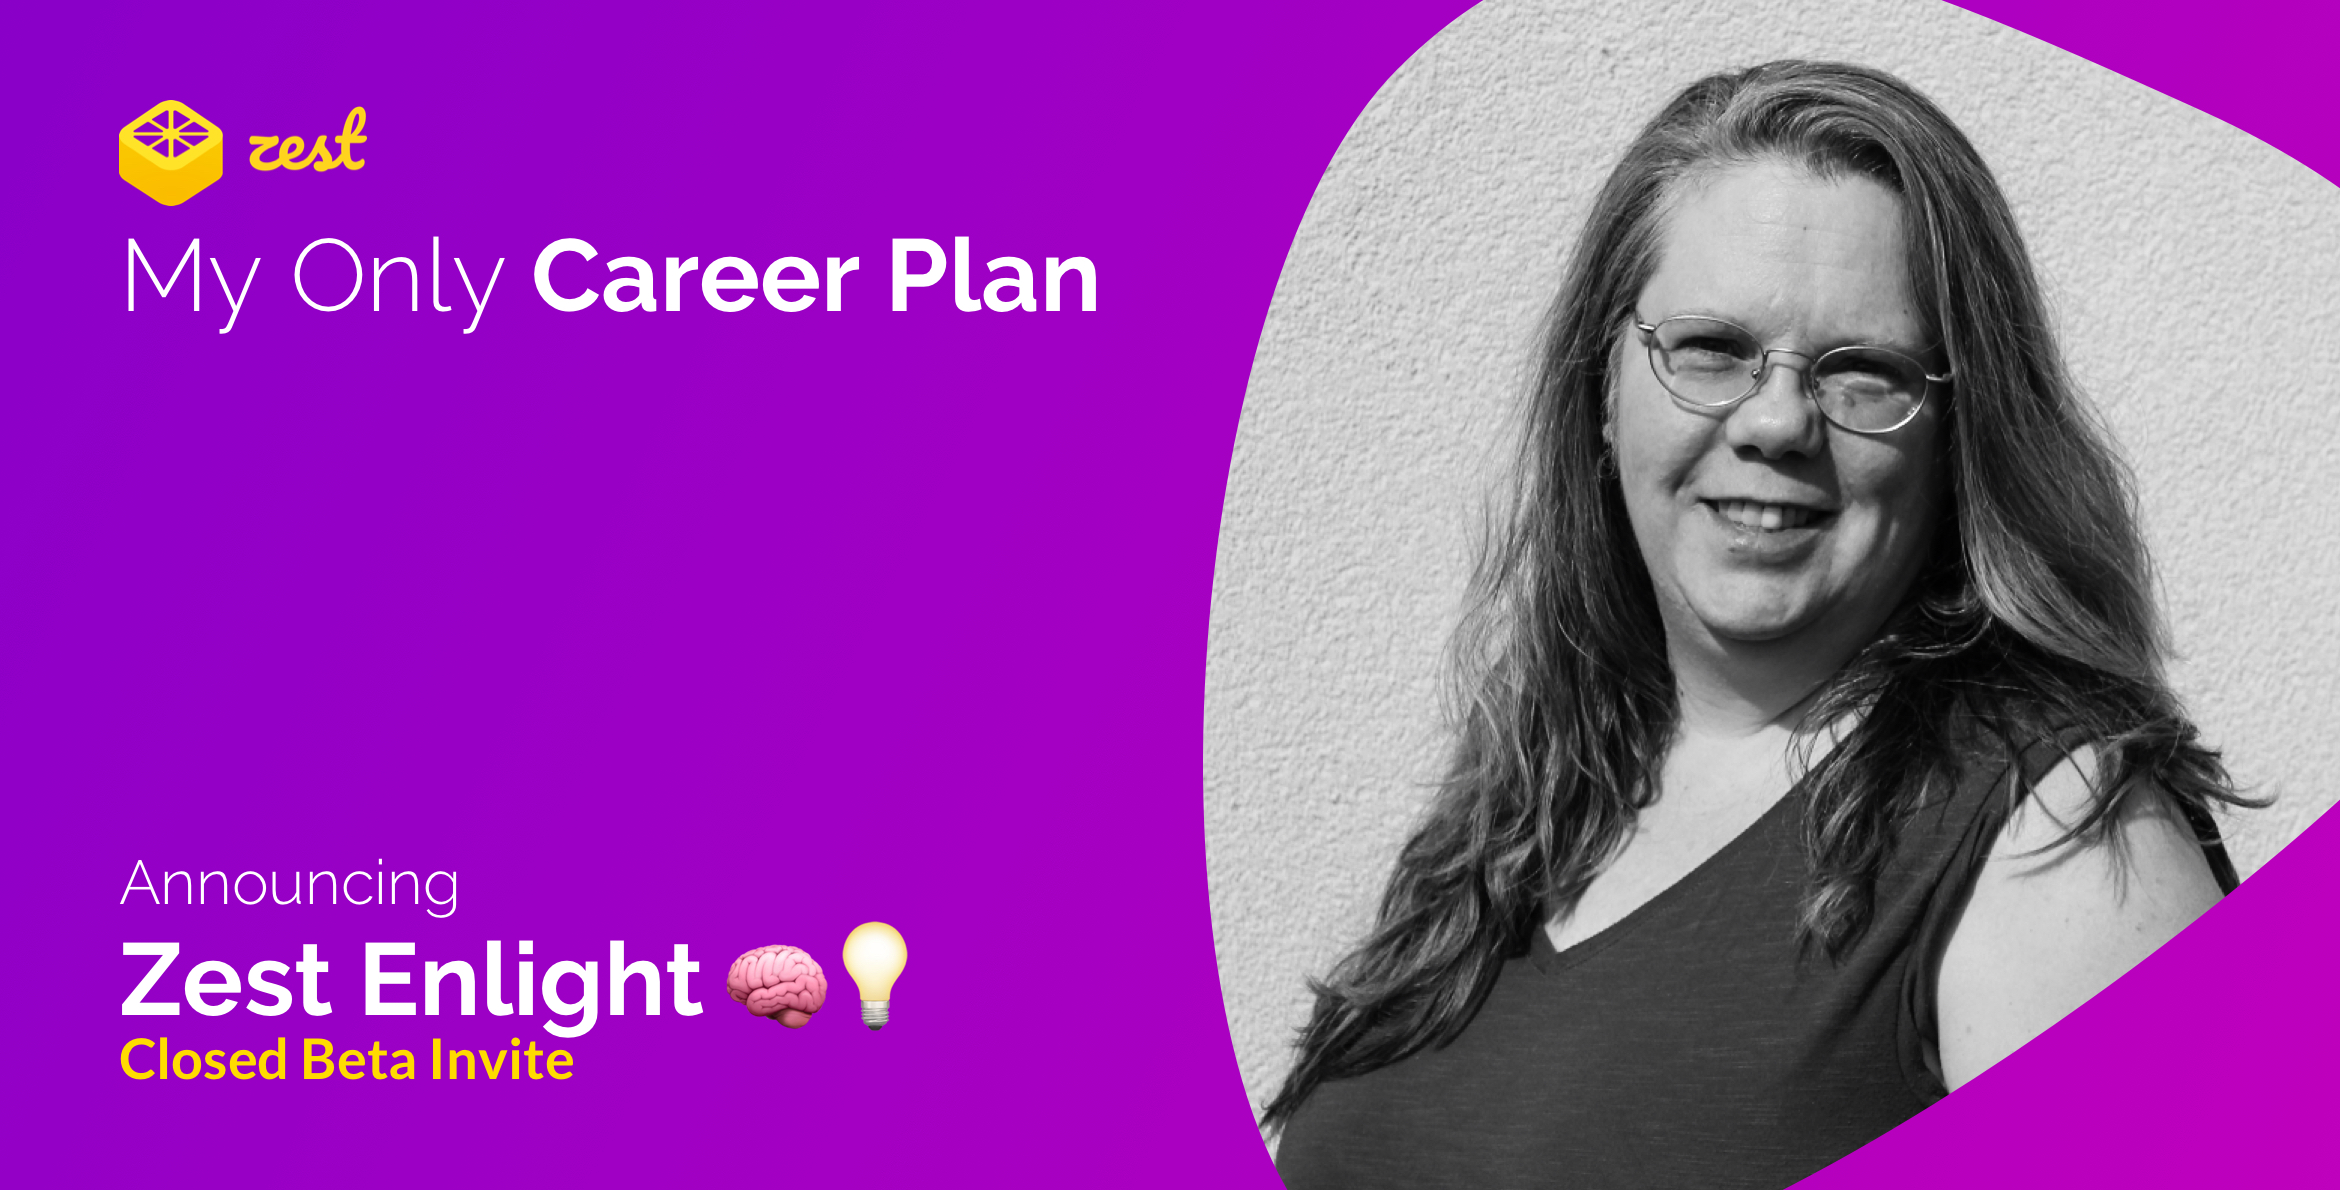 Tonya My Only Career Plan #MyOnlyCareerPlan Zest Enlight